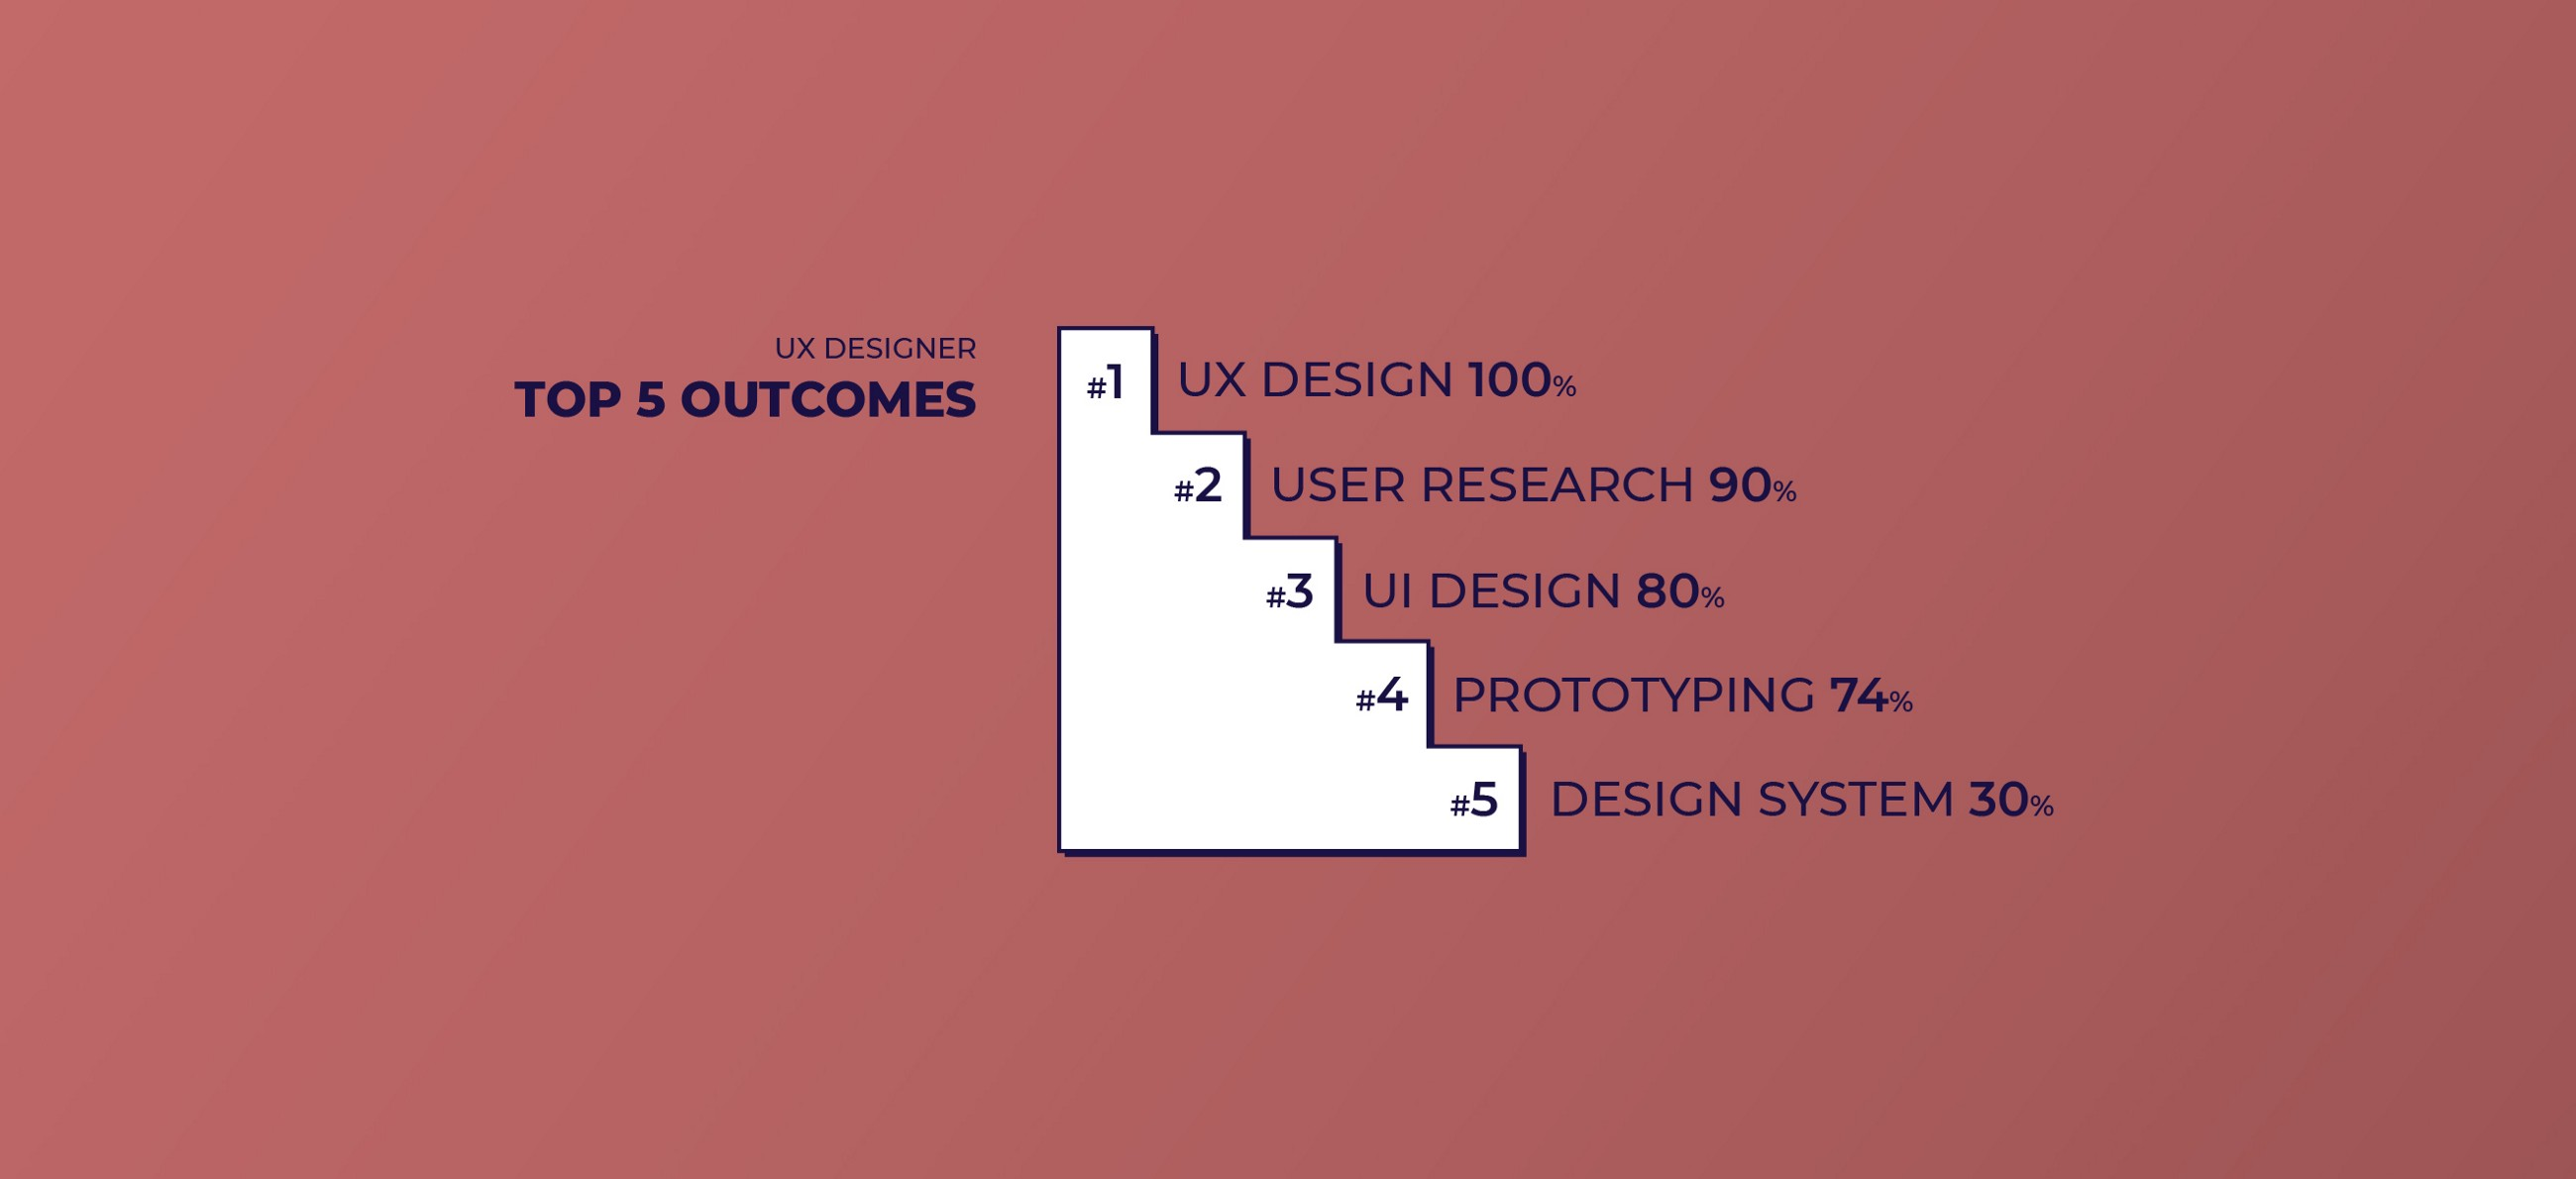 Top 5 Outcomes for UX Designers: UX, User Research, UI, Prototyping, Design system